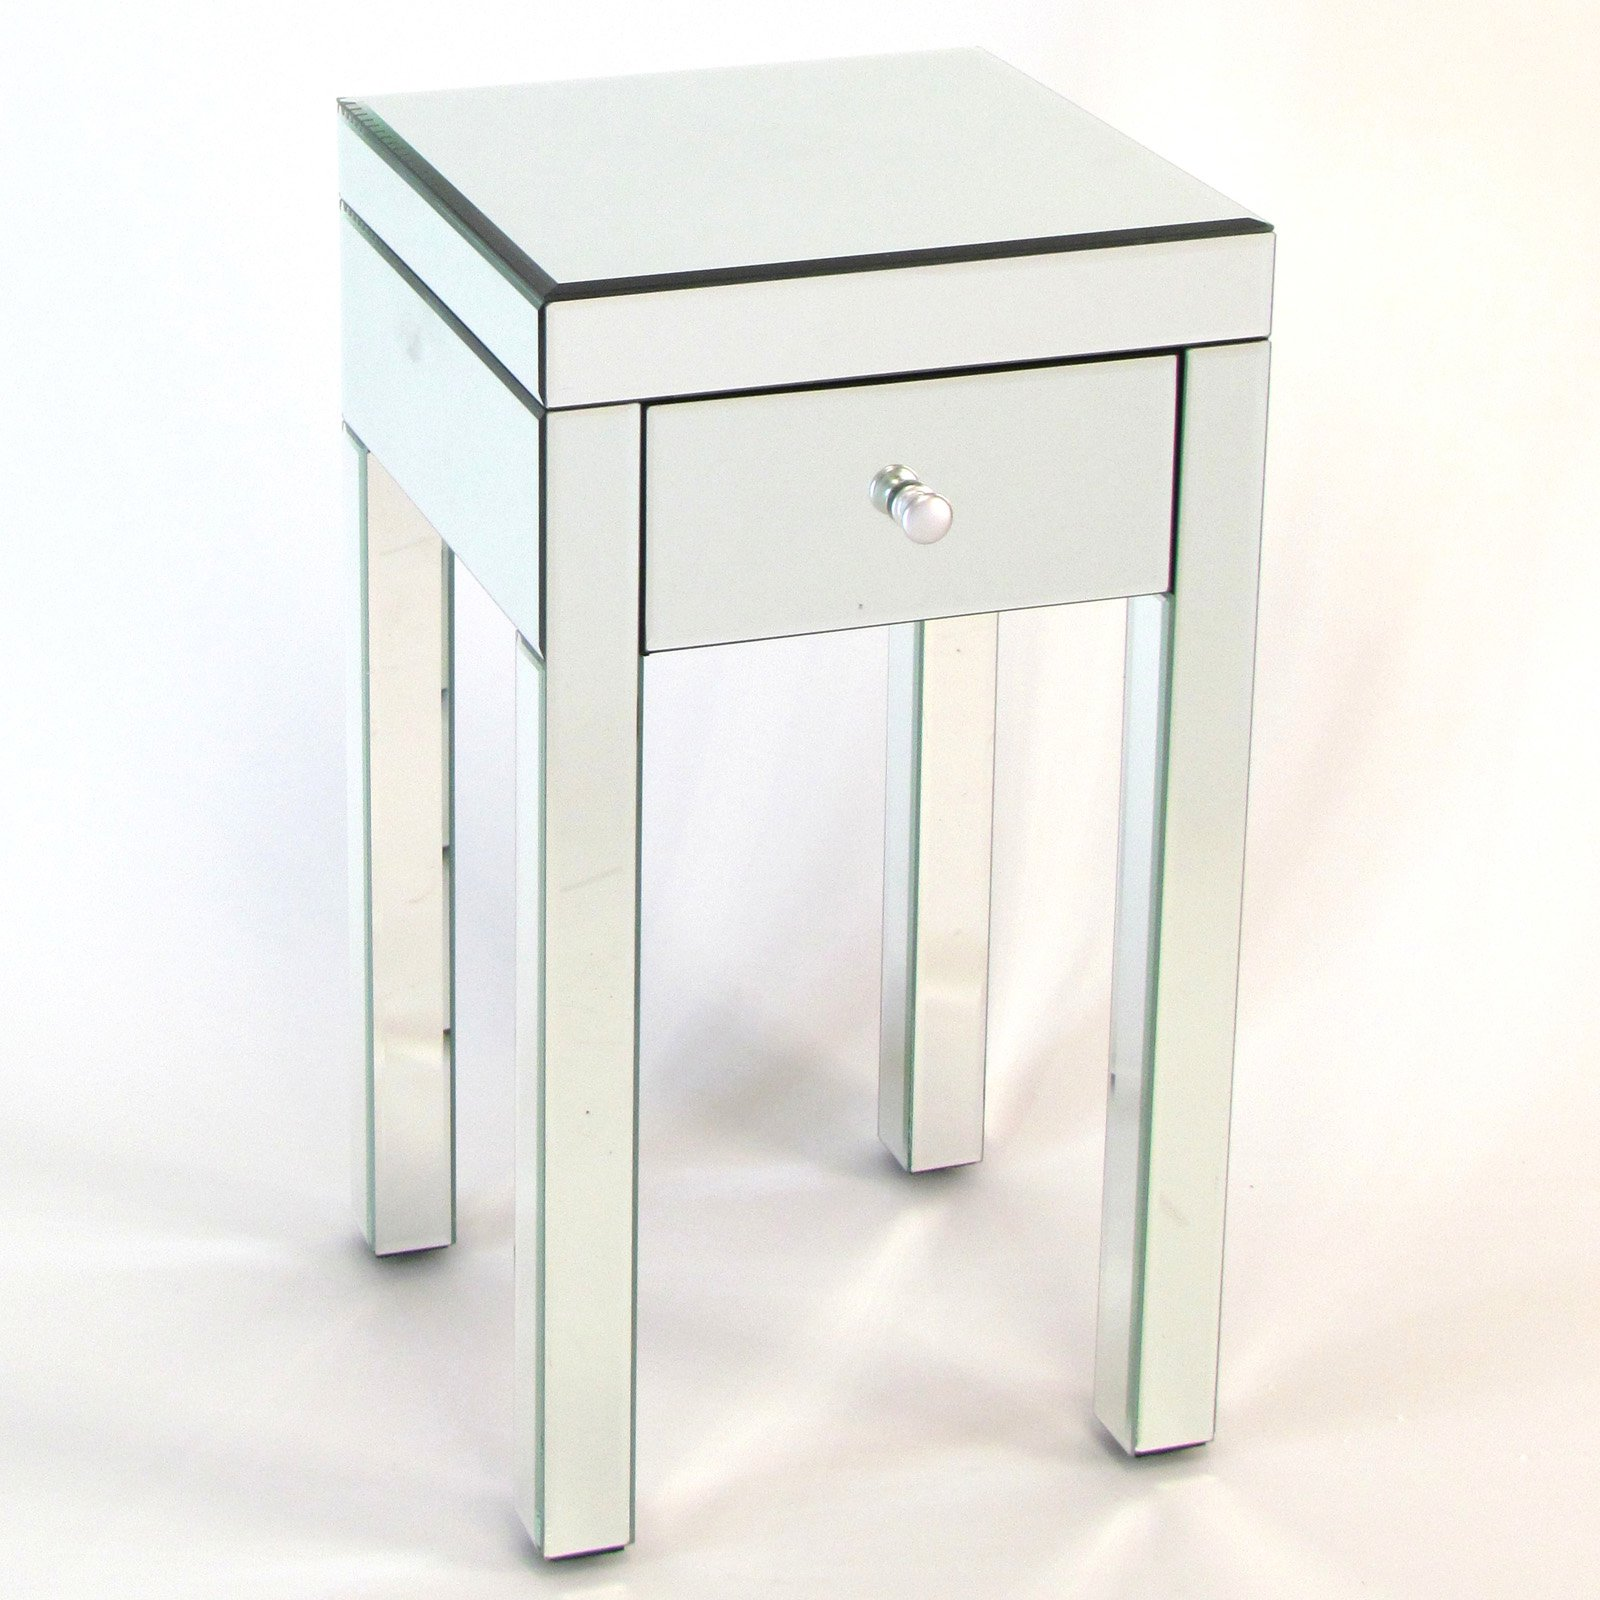 white gloss coffee table ikea the fantastic cool cube end dazzling mirrored for your home decor small bedside drawers tables glass accent with drawer borghese black and gold lamps